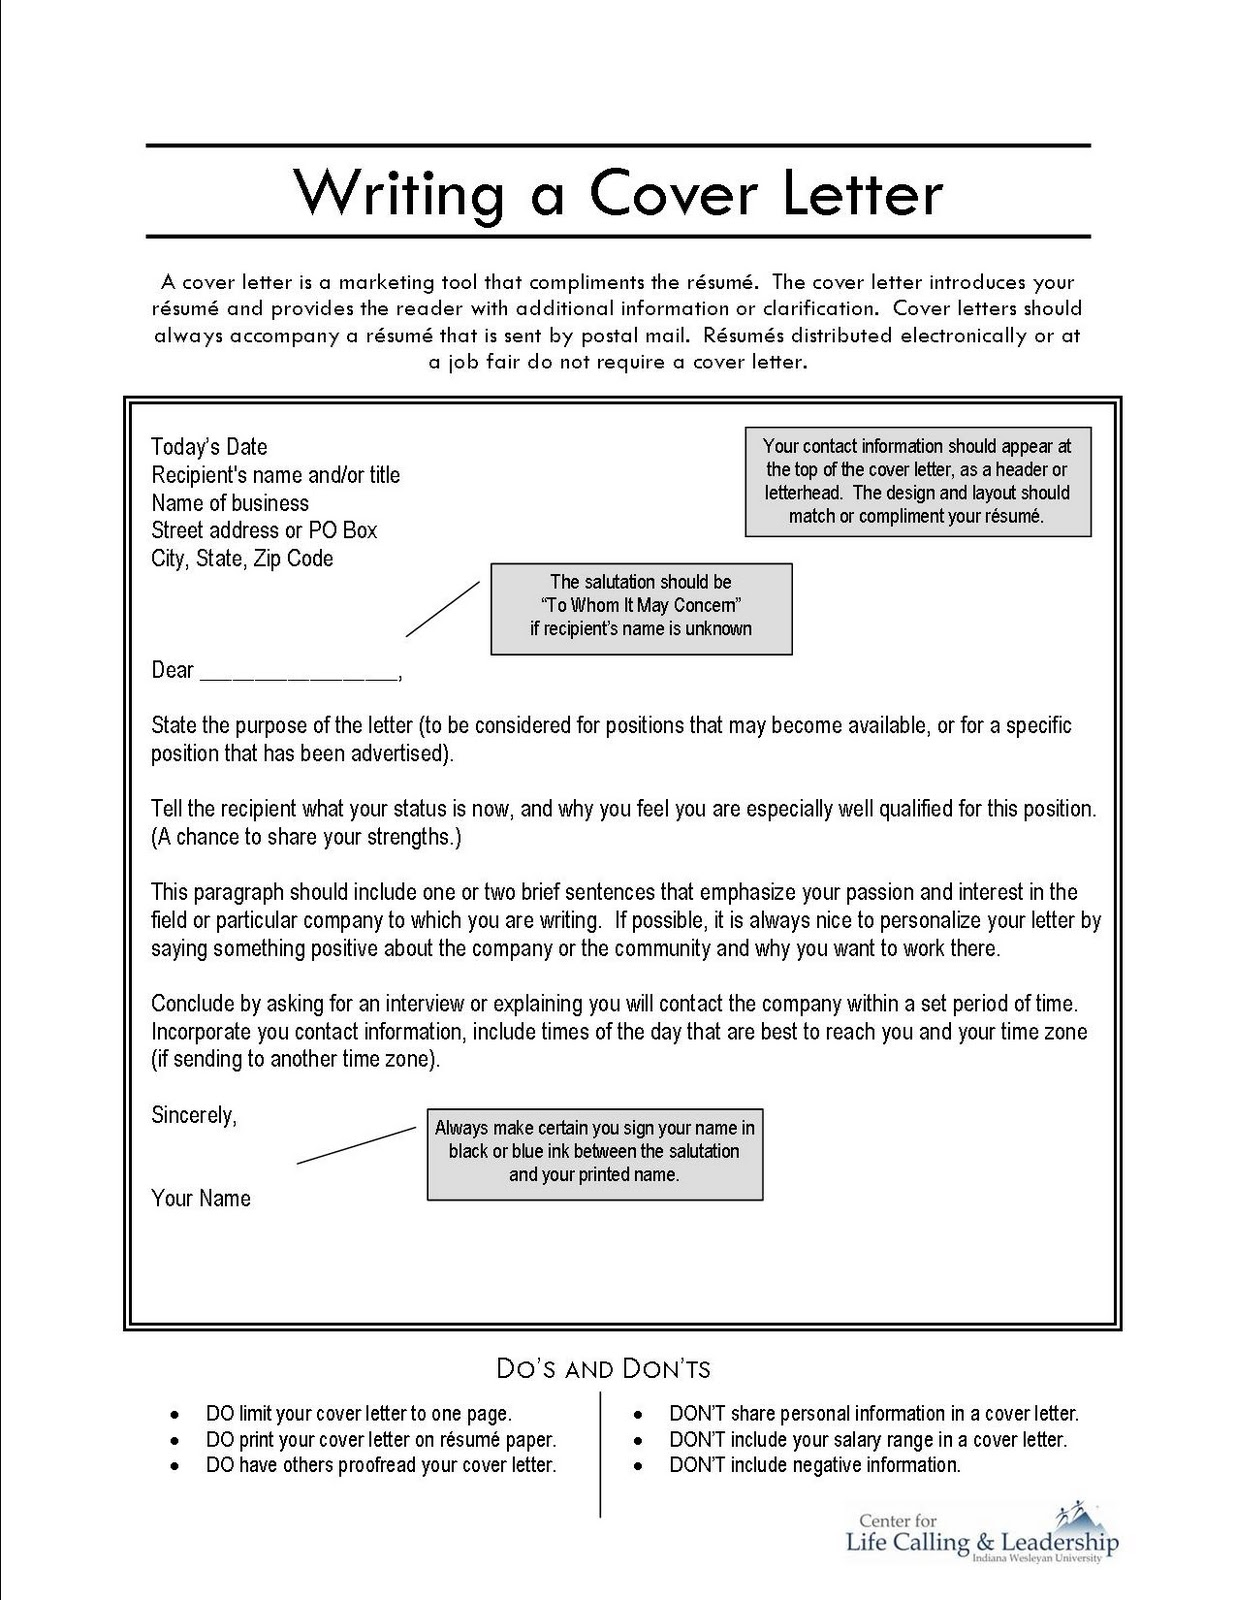 a good resume cover letter